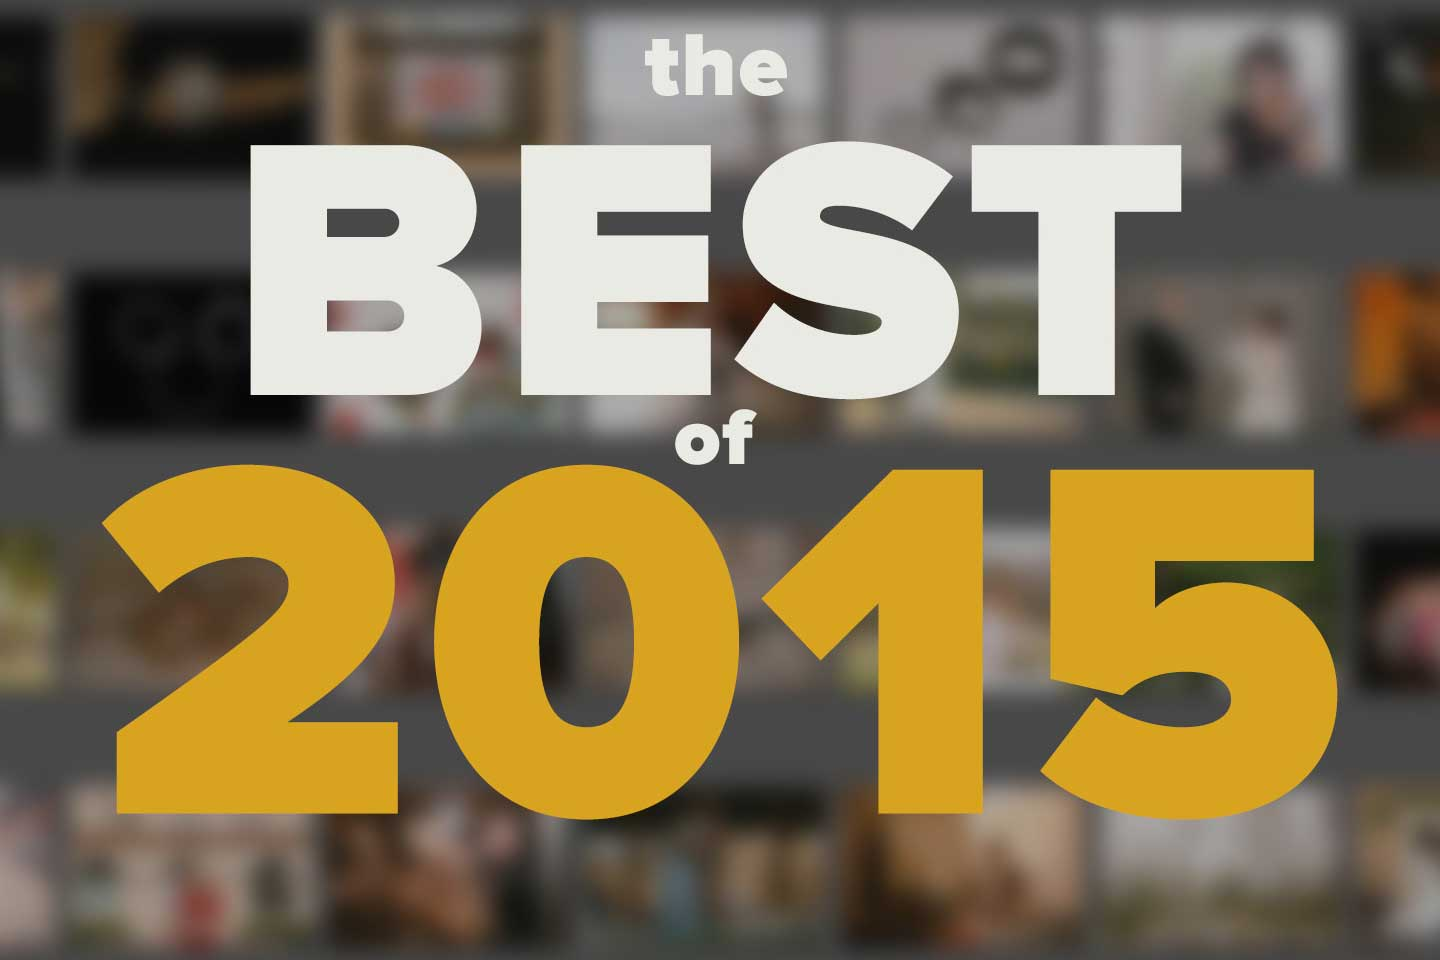 14121top 10 2015 | the winners!